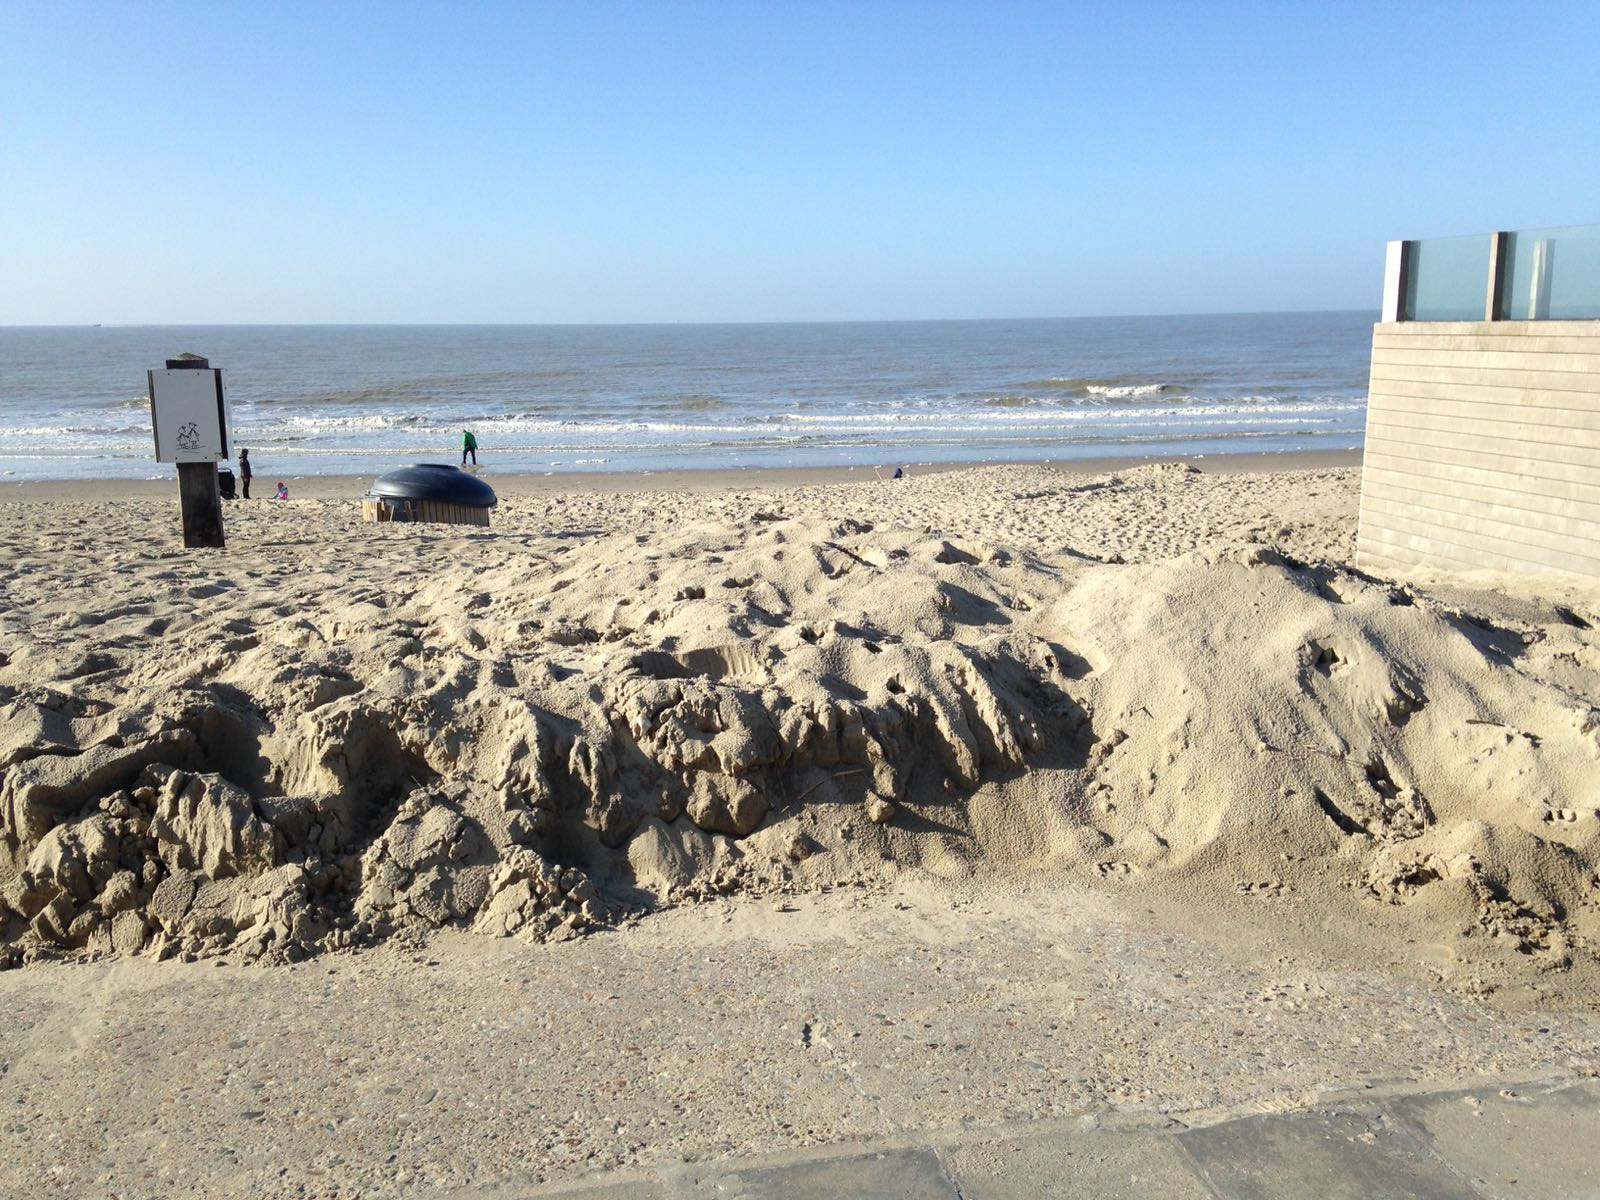 http://www.nordsee-chalet.com/wp-content/uploads/2017/03/IMG-20170218-WA0024.jpg